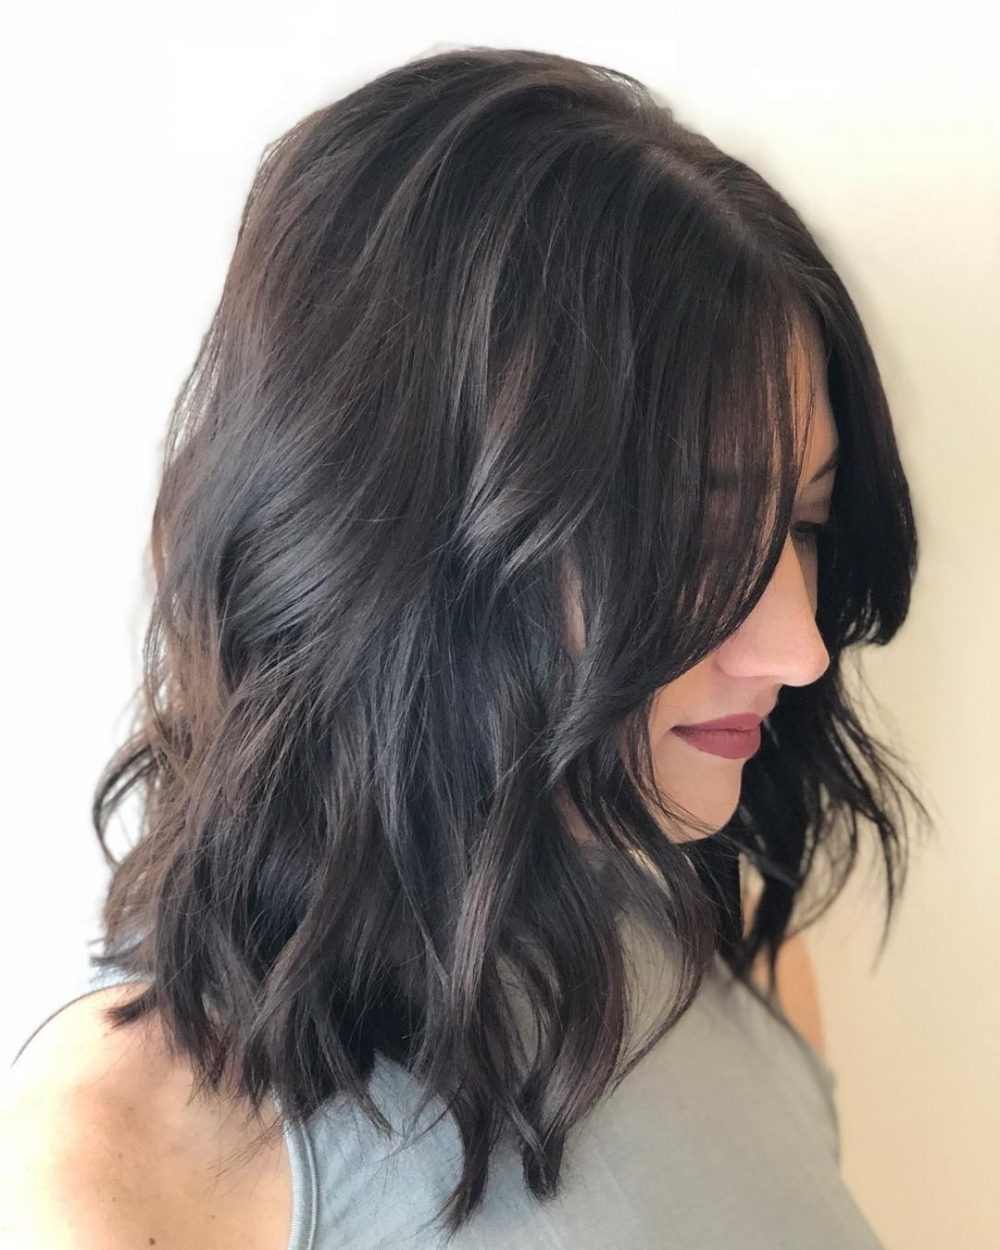 30 Best Hairstyles For Thick Hair & Trending Thick Haircuts 30+ Awesome Thick Hair Low Maintenance Medium Length Hairstyles